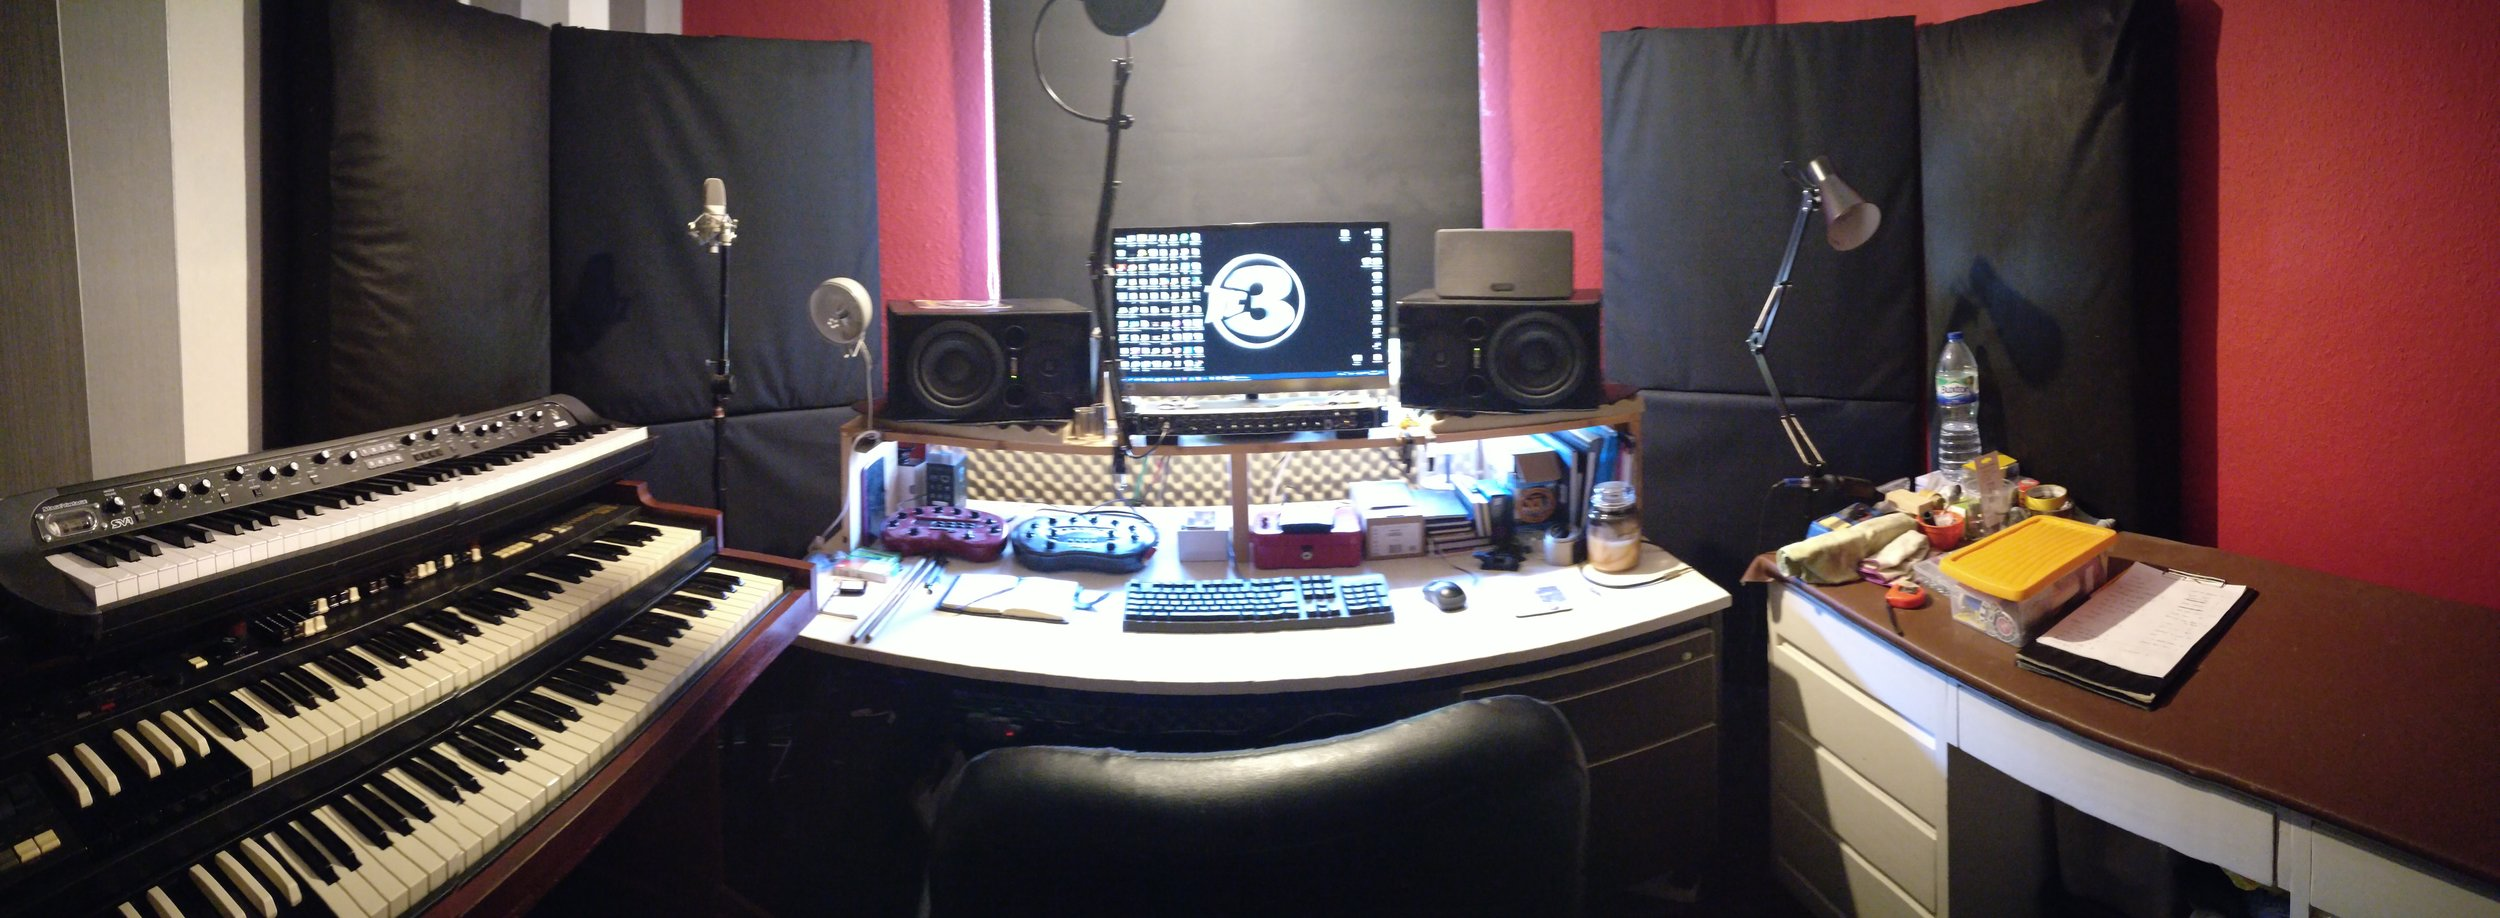 The teaching environment - a small but fully equipped recording studio with access to digital media and many other resources.